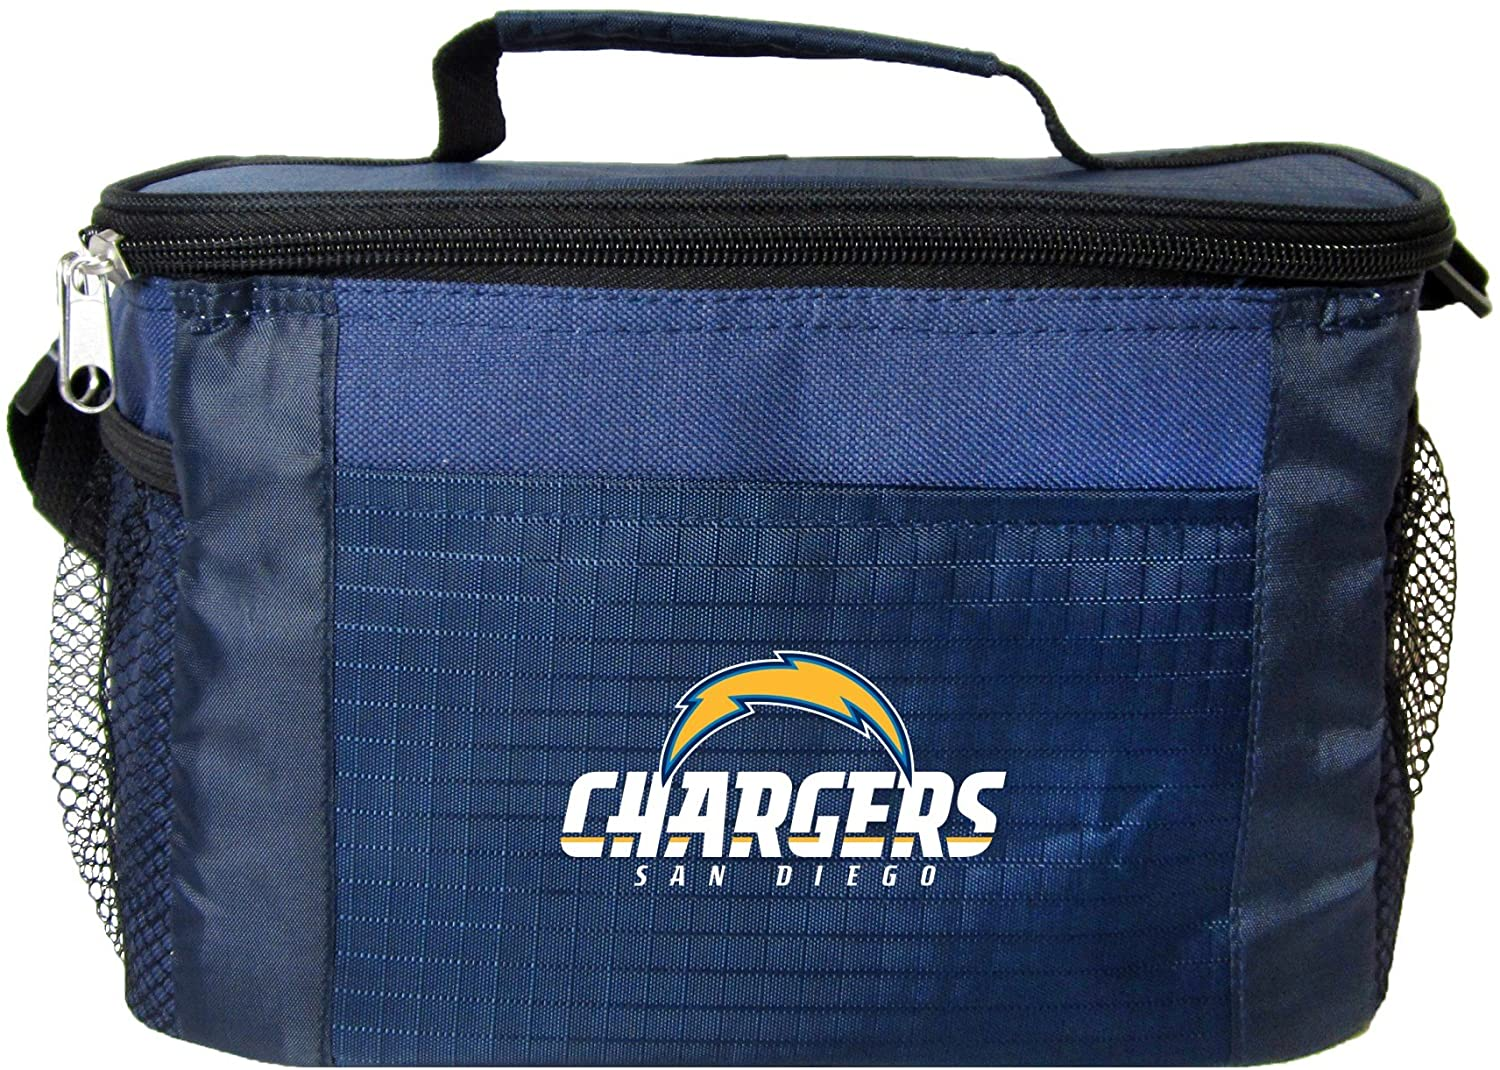 NFL San Diego Chargers Insulated Lunch Cooler Bag with Zipper Closure, Navy